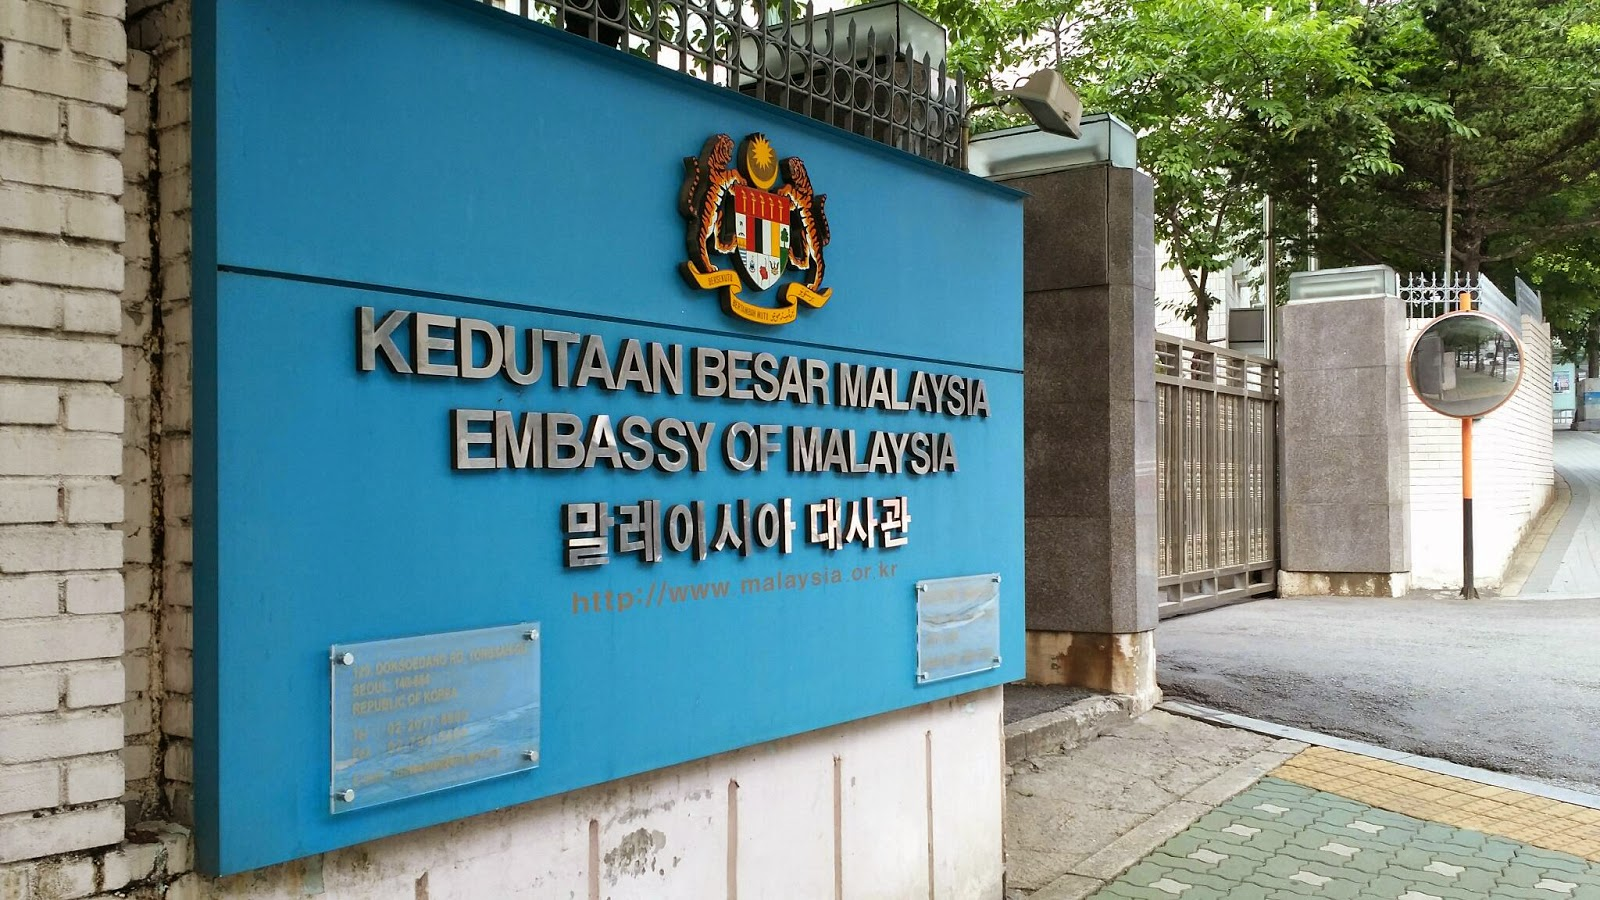 Image from Embassy of Malaysia in Seoul, South Korea.